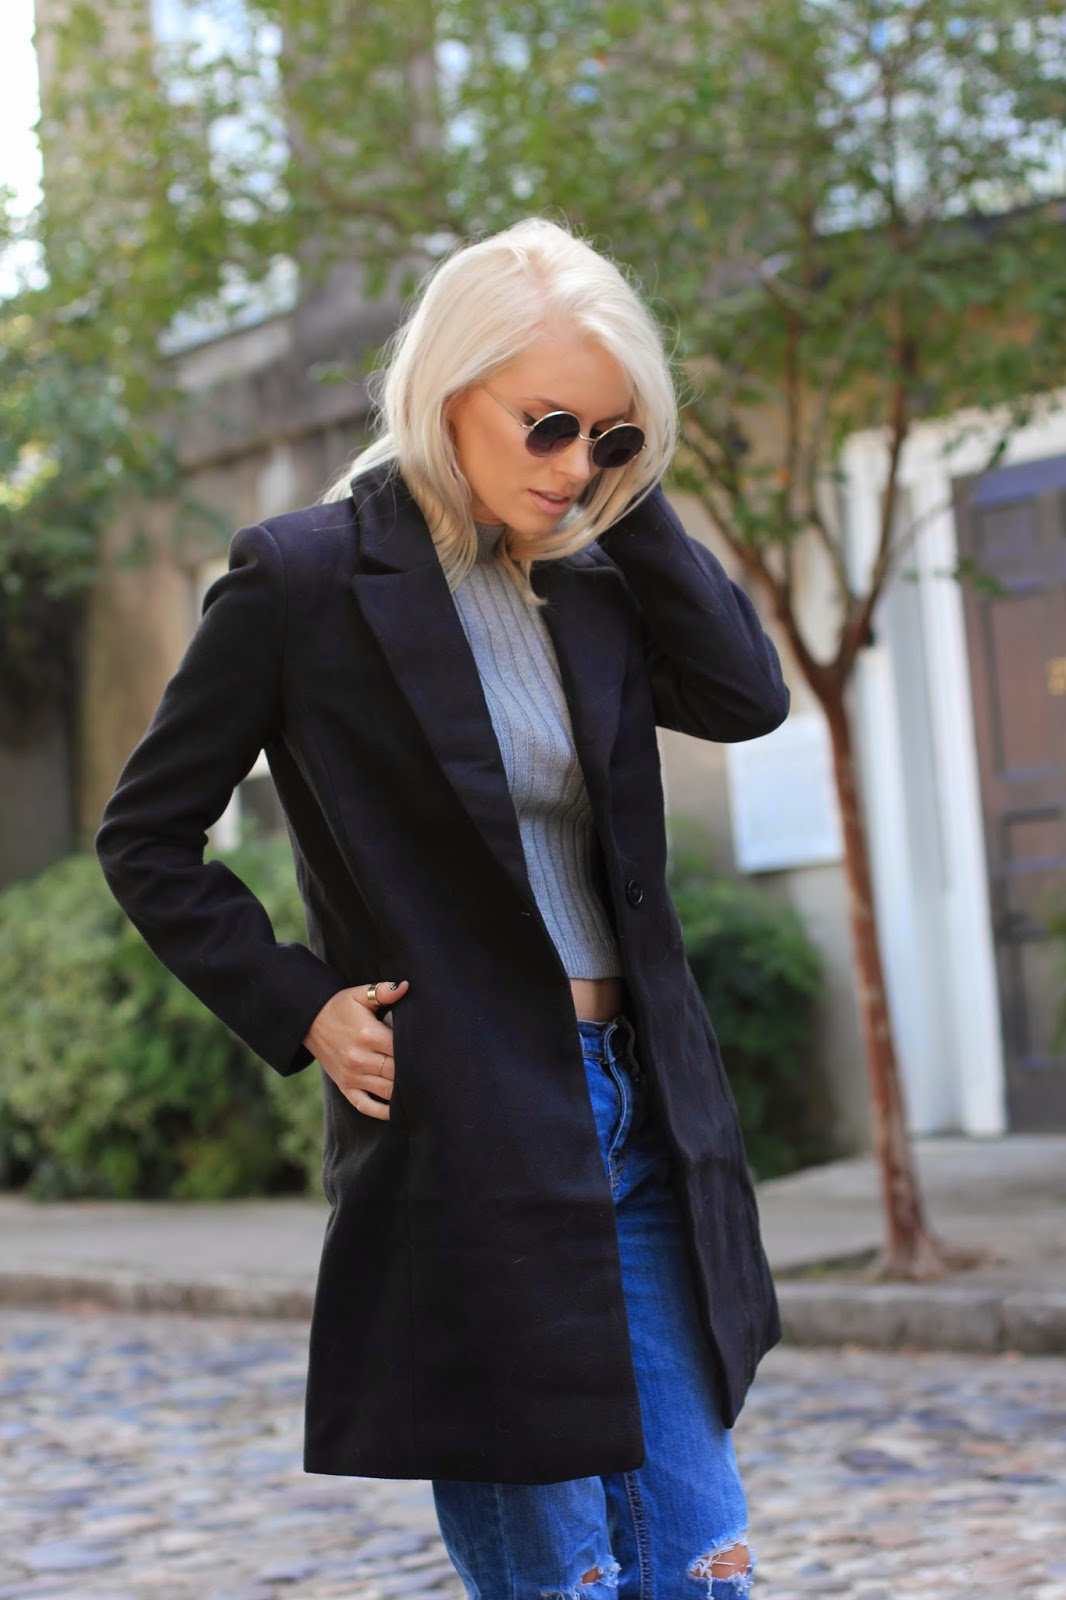 charleston sc street style fashion blogger dannon k collard like the yogurt cropped sleeveless sweater grey gray long black blazer peacoat oversized boyfriend jeans denim peep toe mules nonstop steve madden shoes heels cobblestone road downtown black button london nails union round sunglasses ashley olsen style platinum blonde long bob